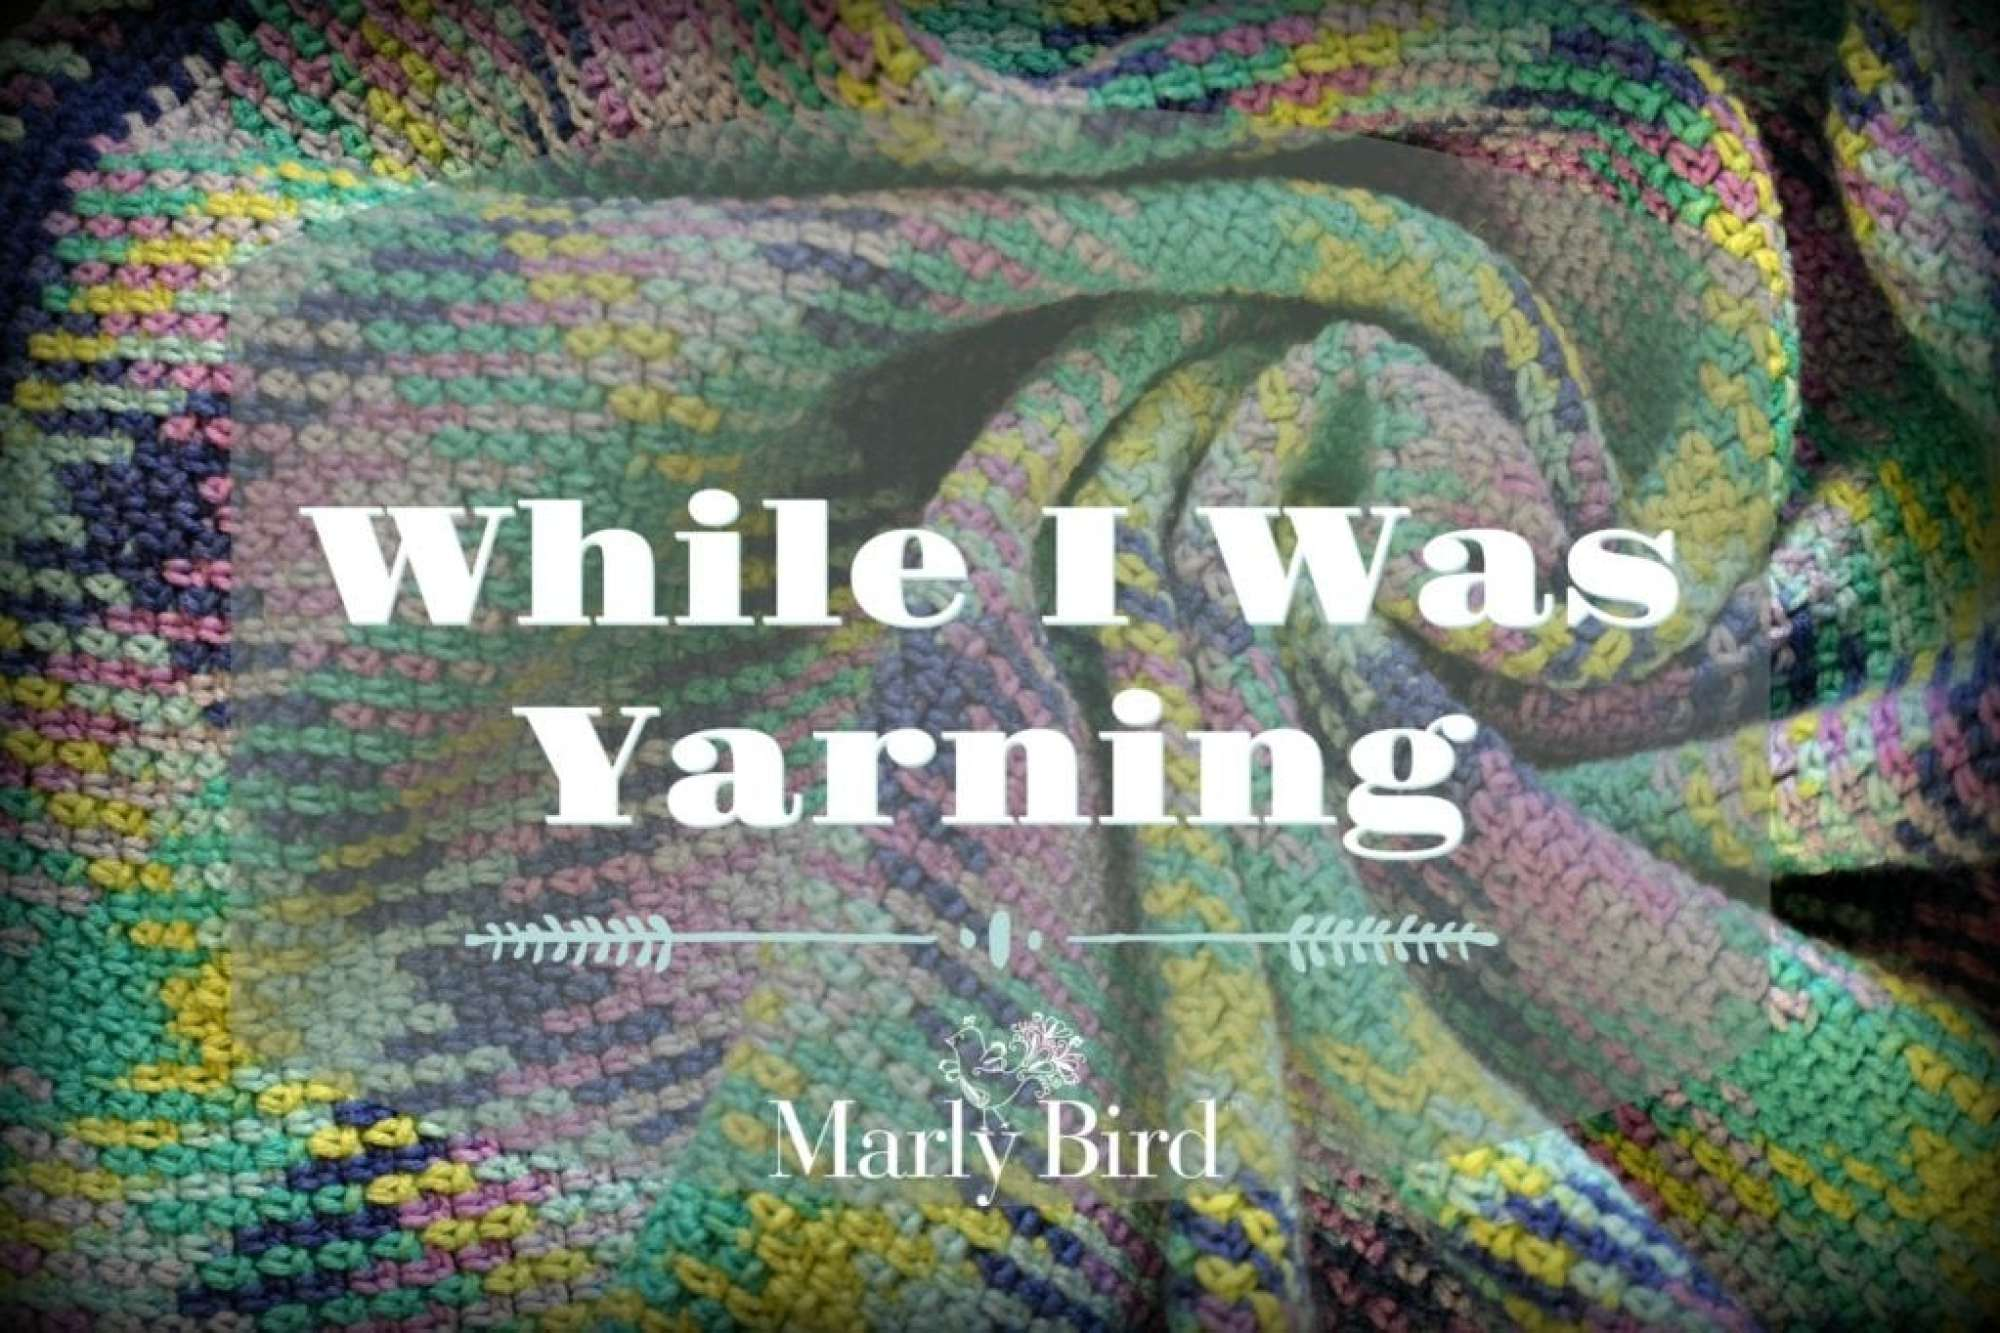 While I was Yarning